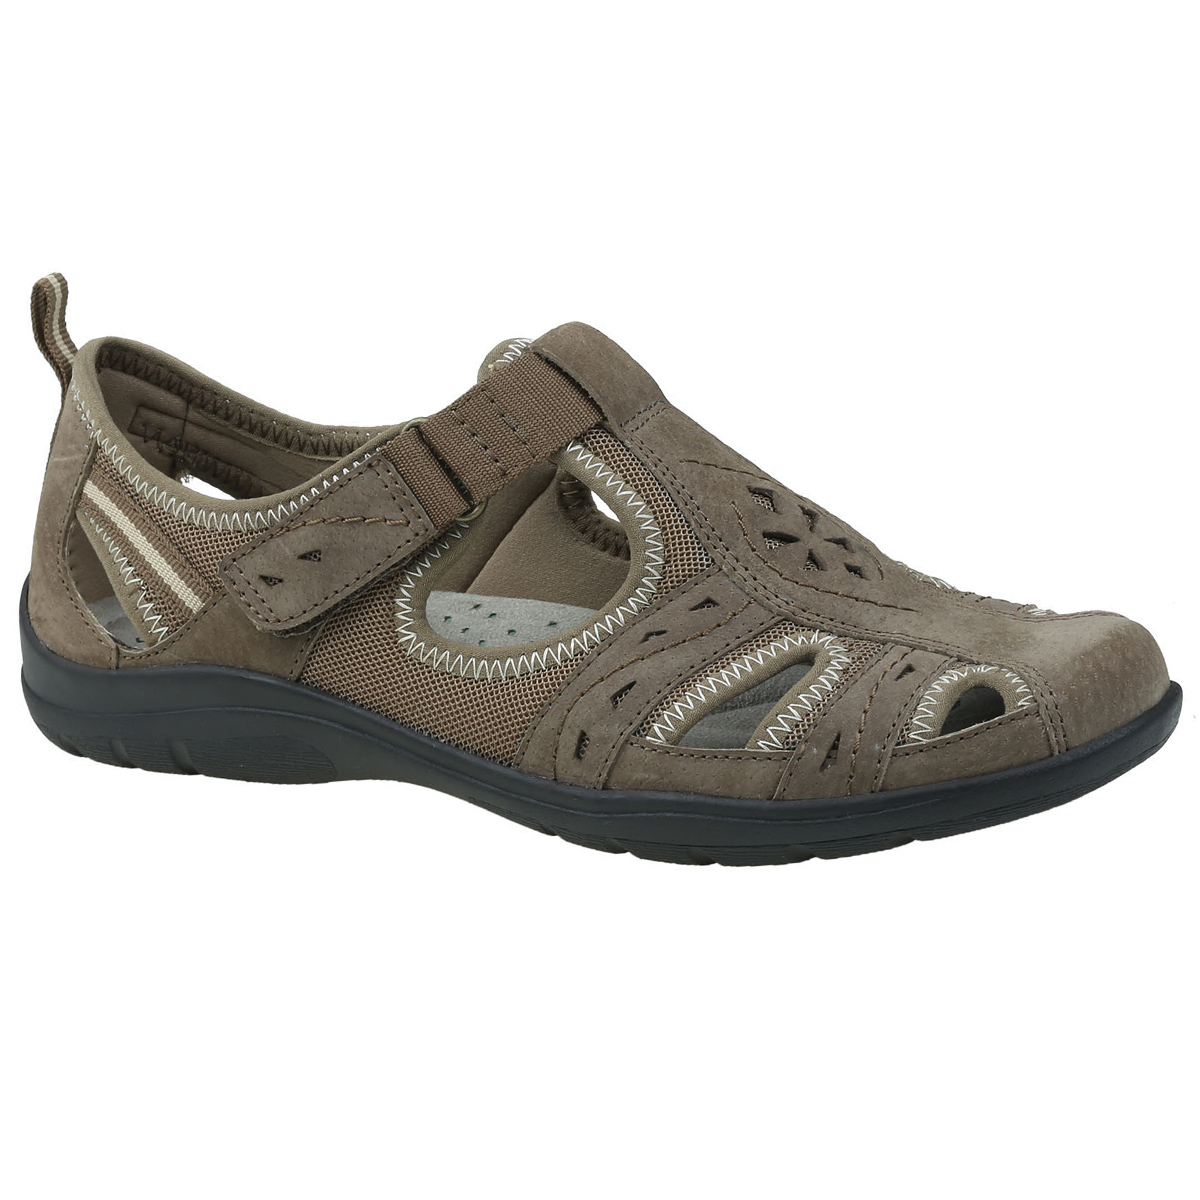 Earth Origins Women's Taye Casual Shoes, Wide - Brown, 7